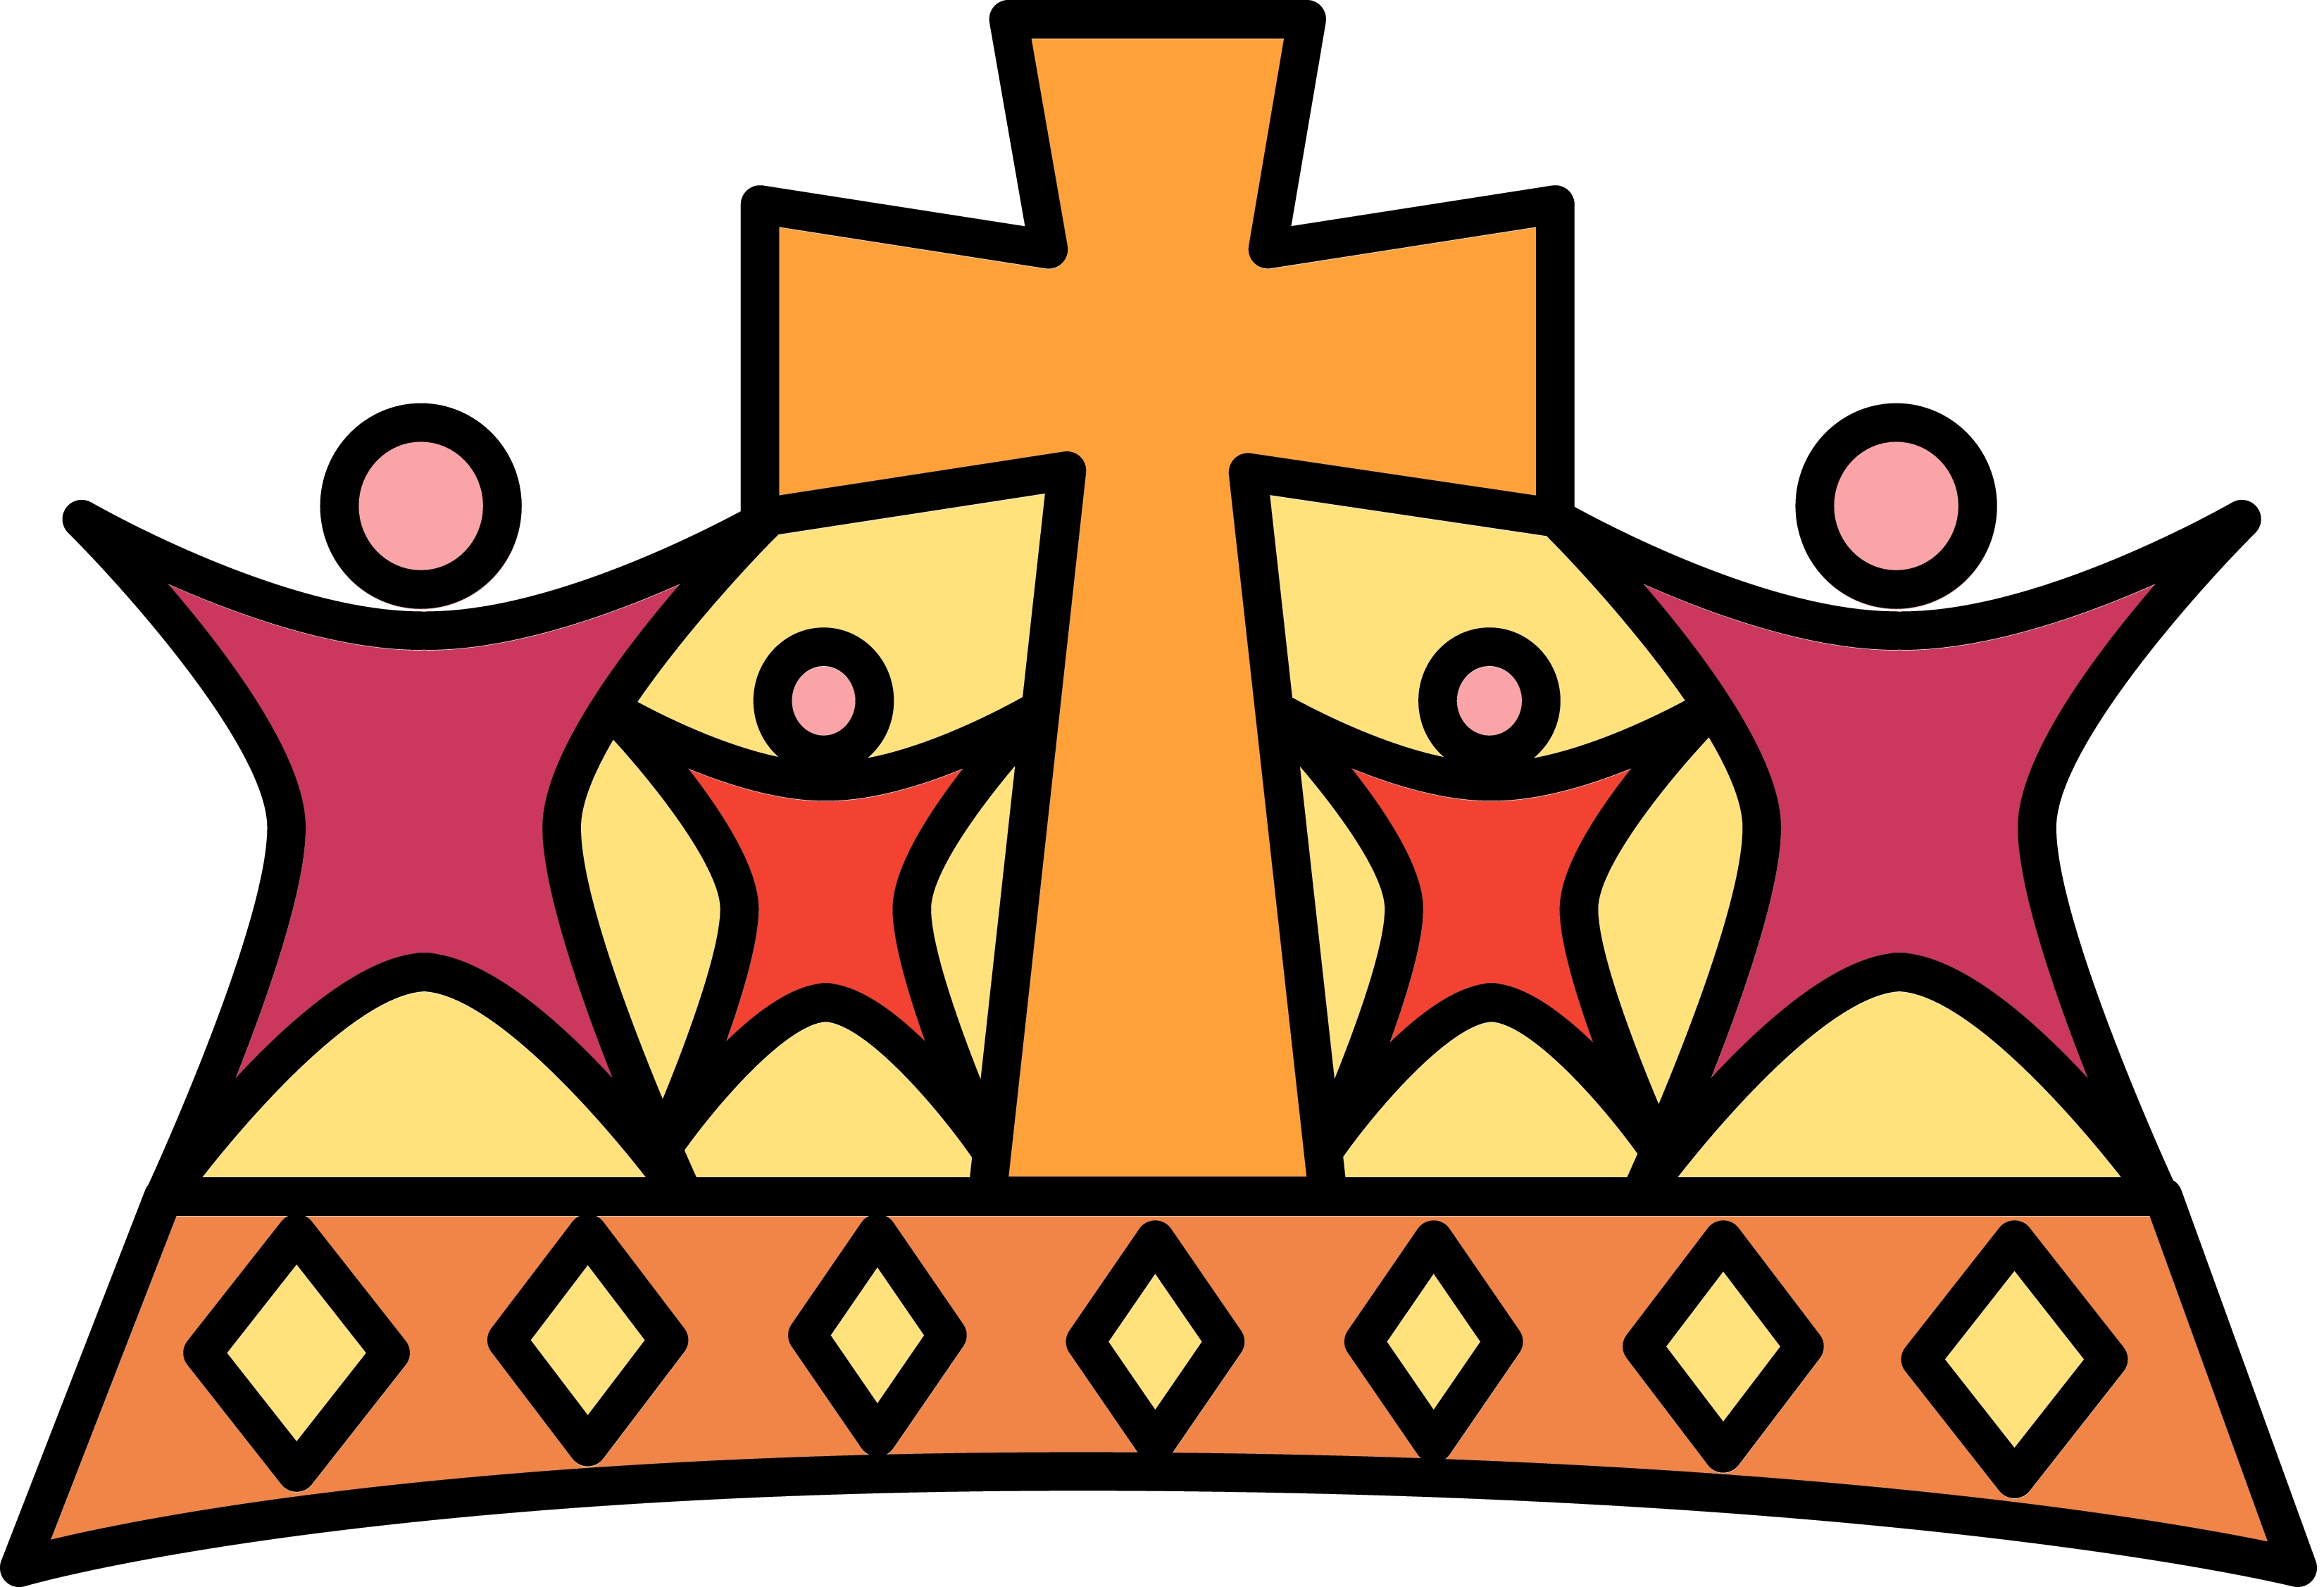 Kingdom of god clipart.